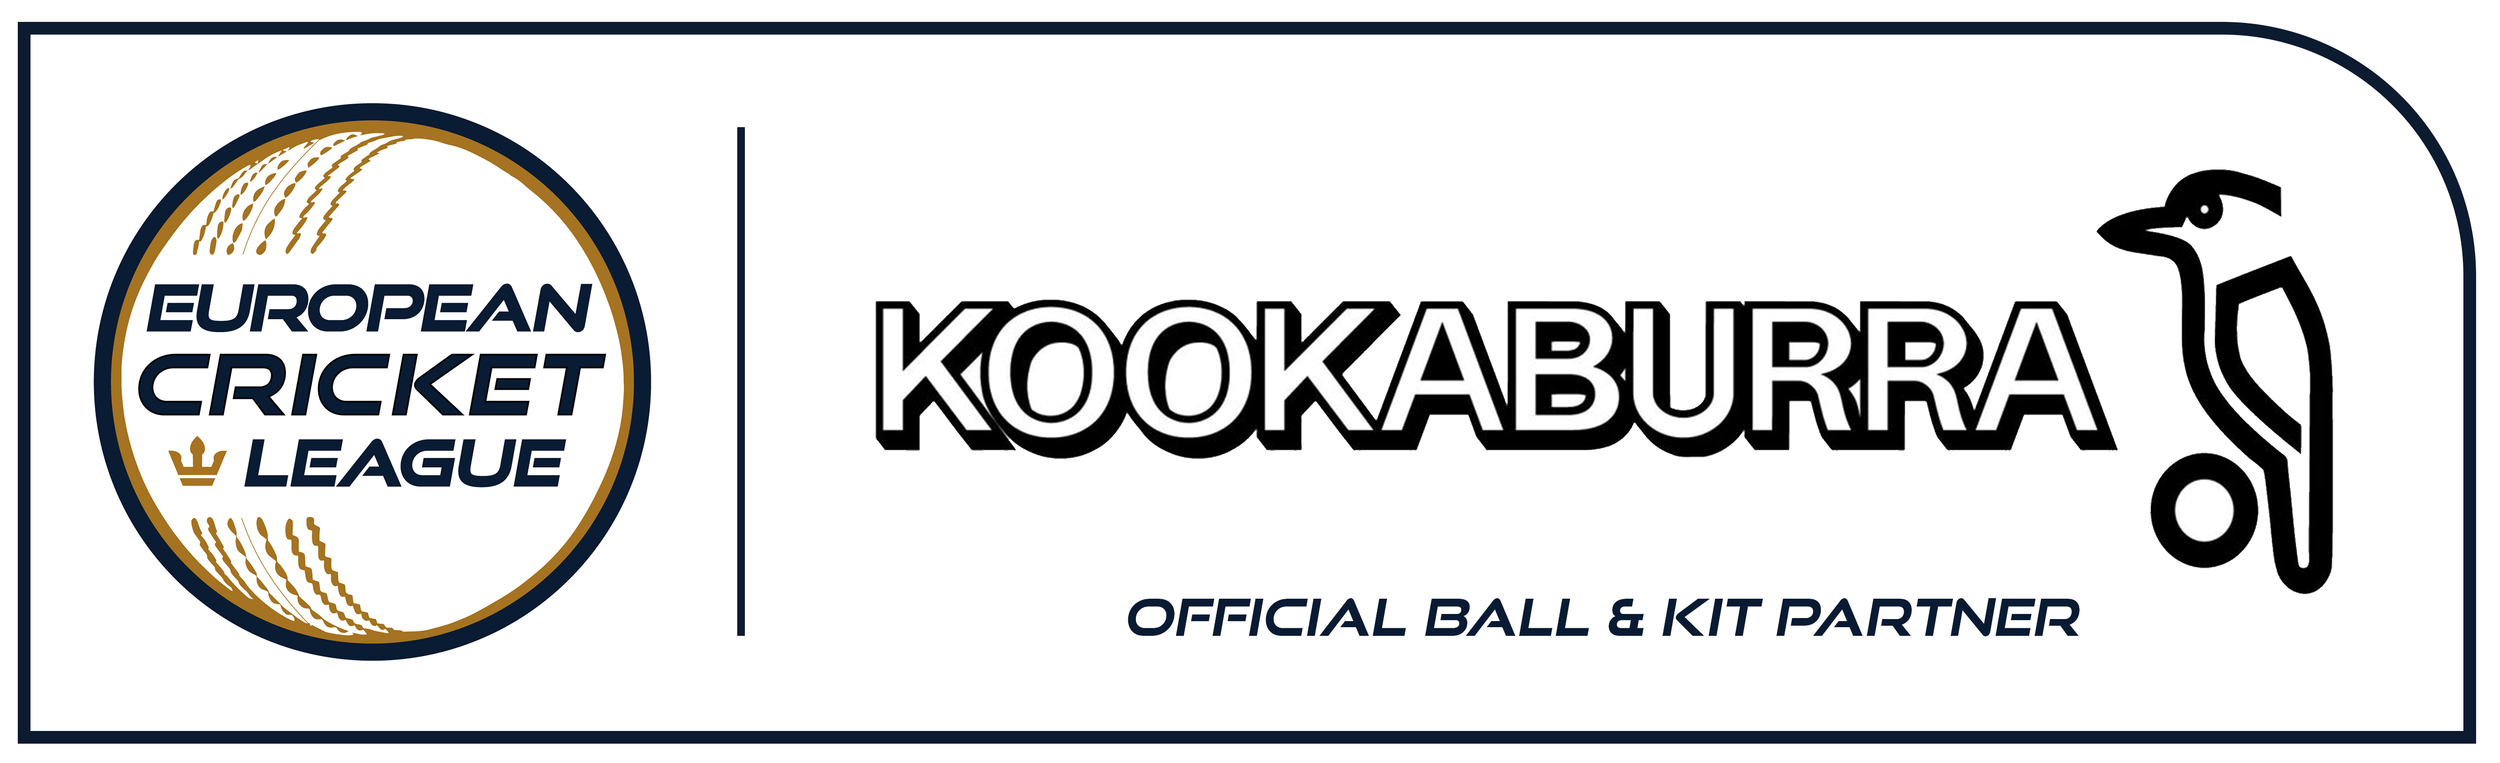 Kookaburra Ball Kit Partner.png